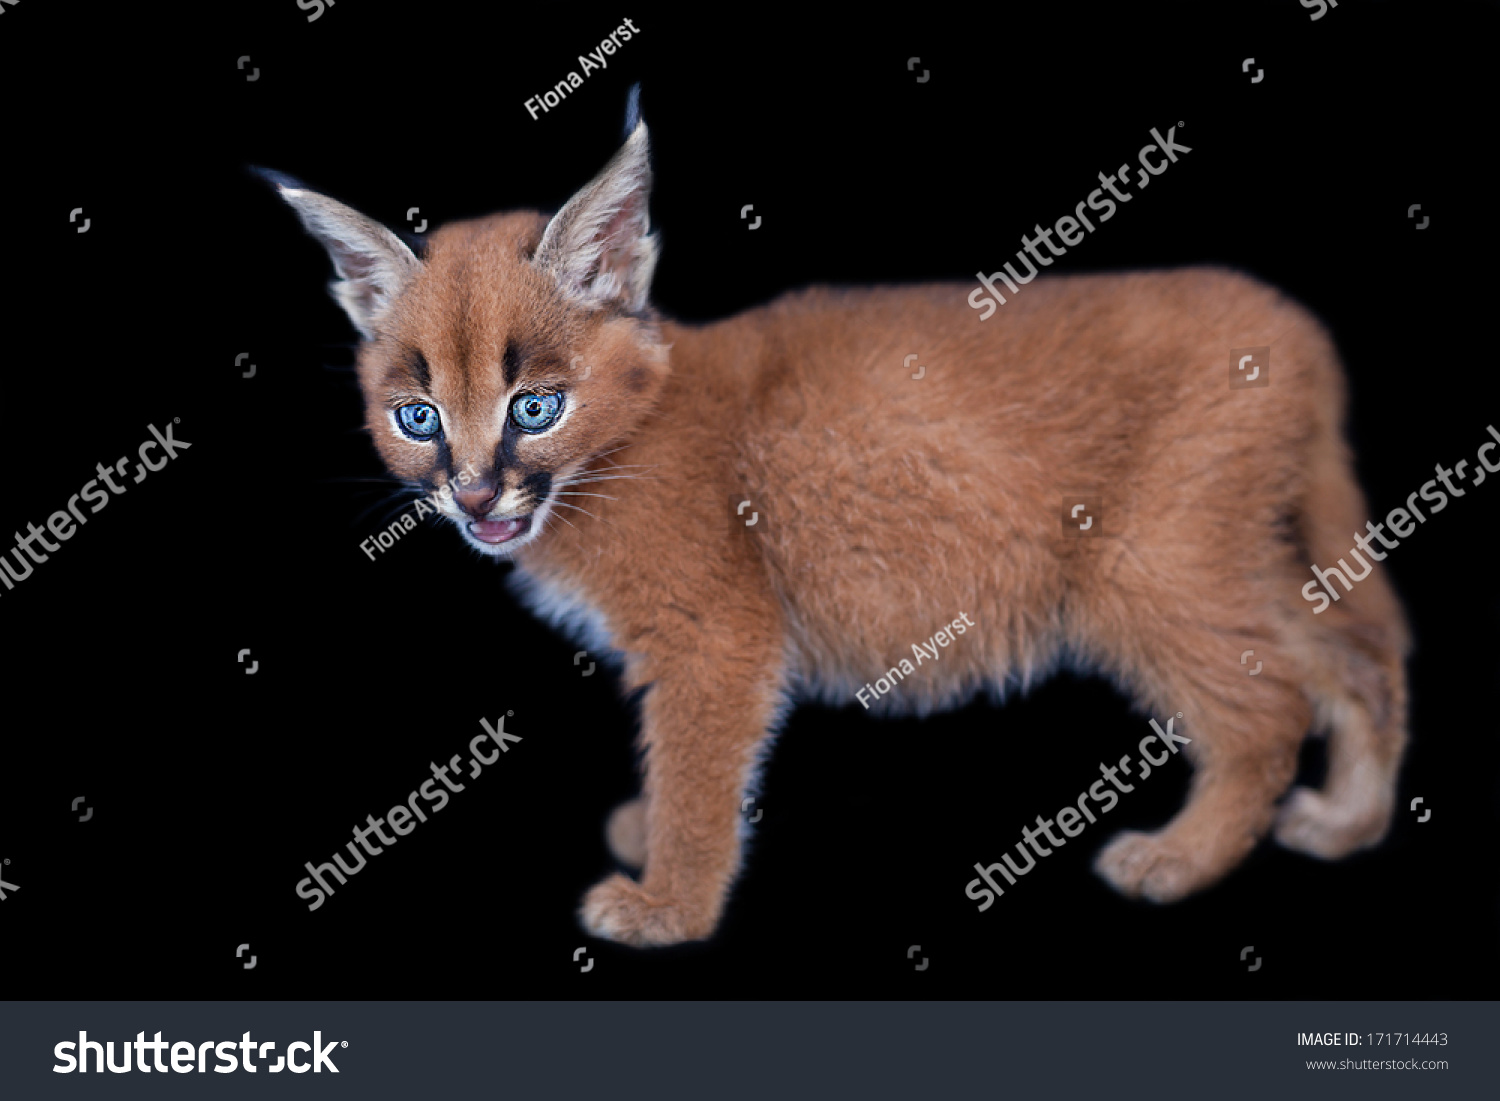 Baby Caracal Stock Photo 171714443 - Shutterstock